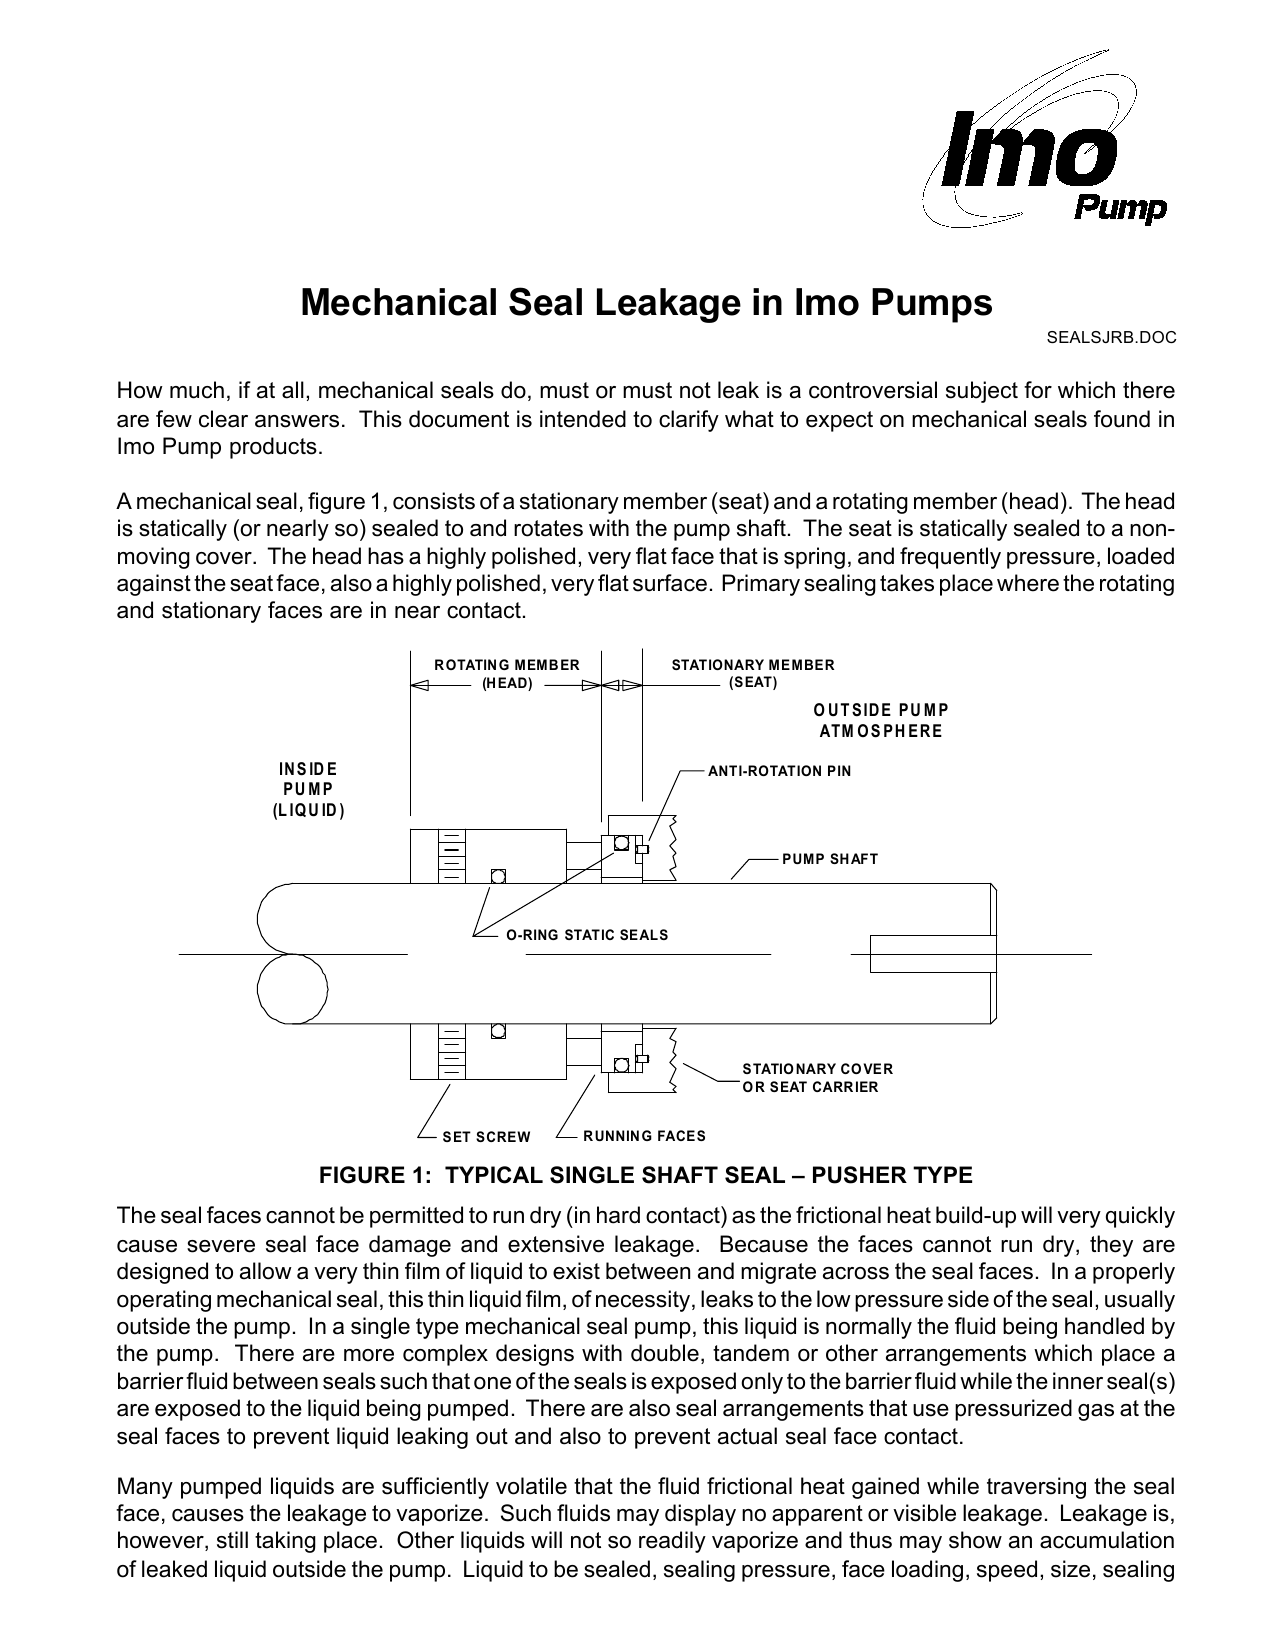 Mechanical Seal Leakage in Imo Pumps